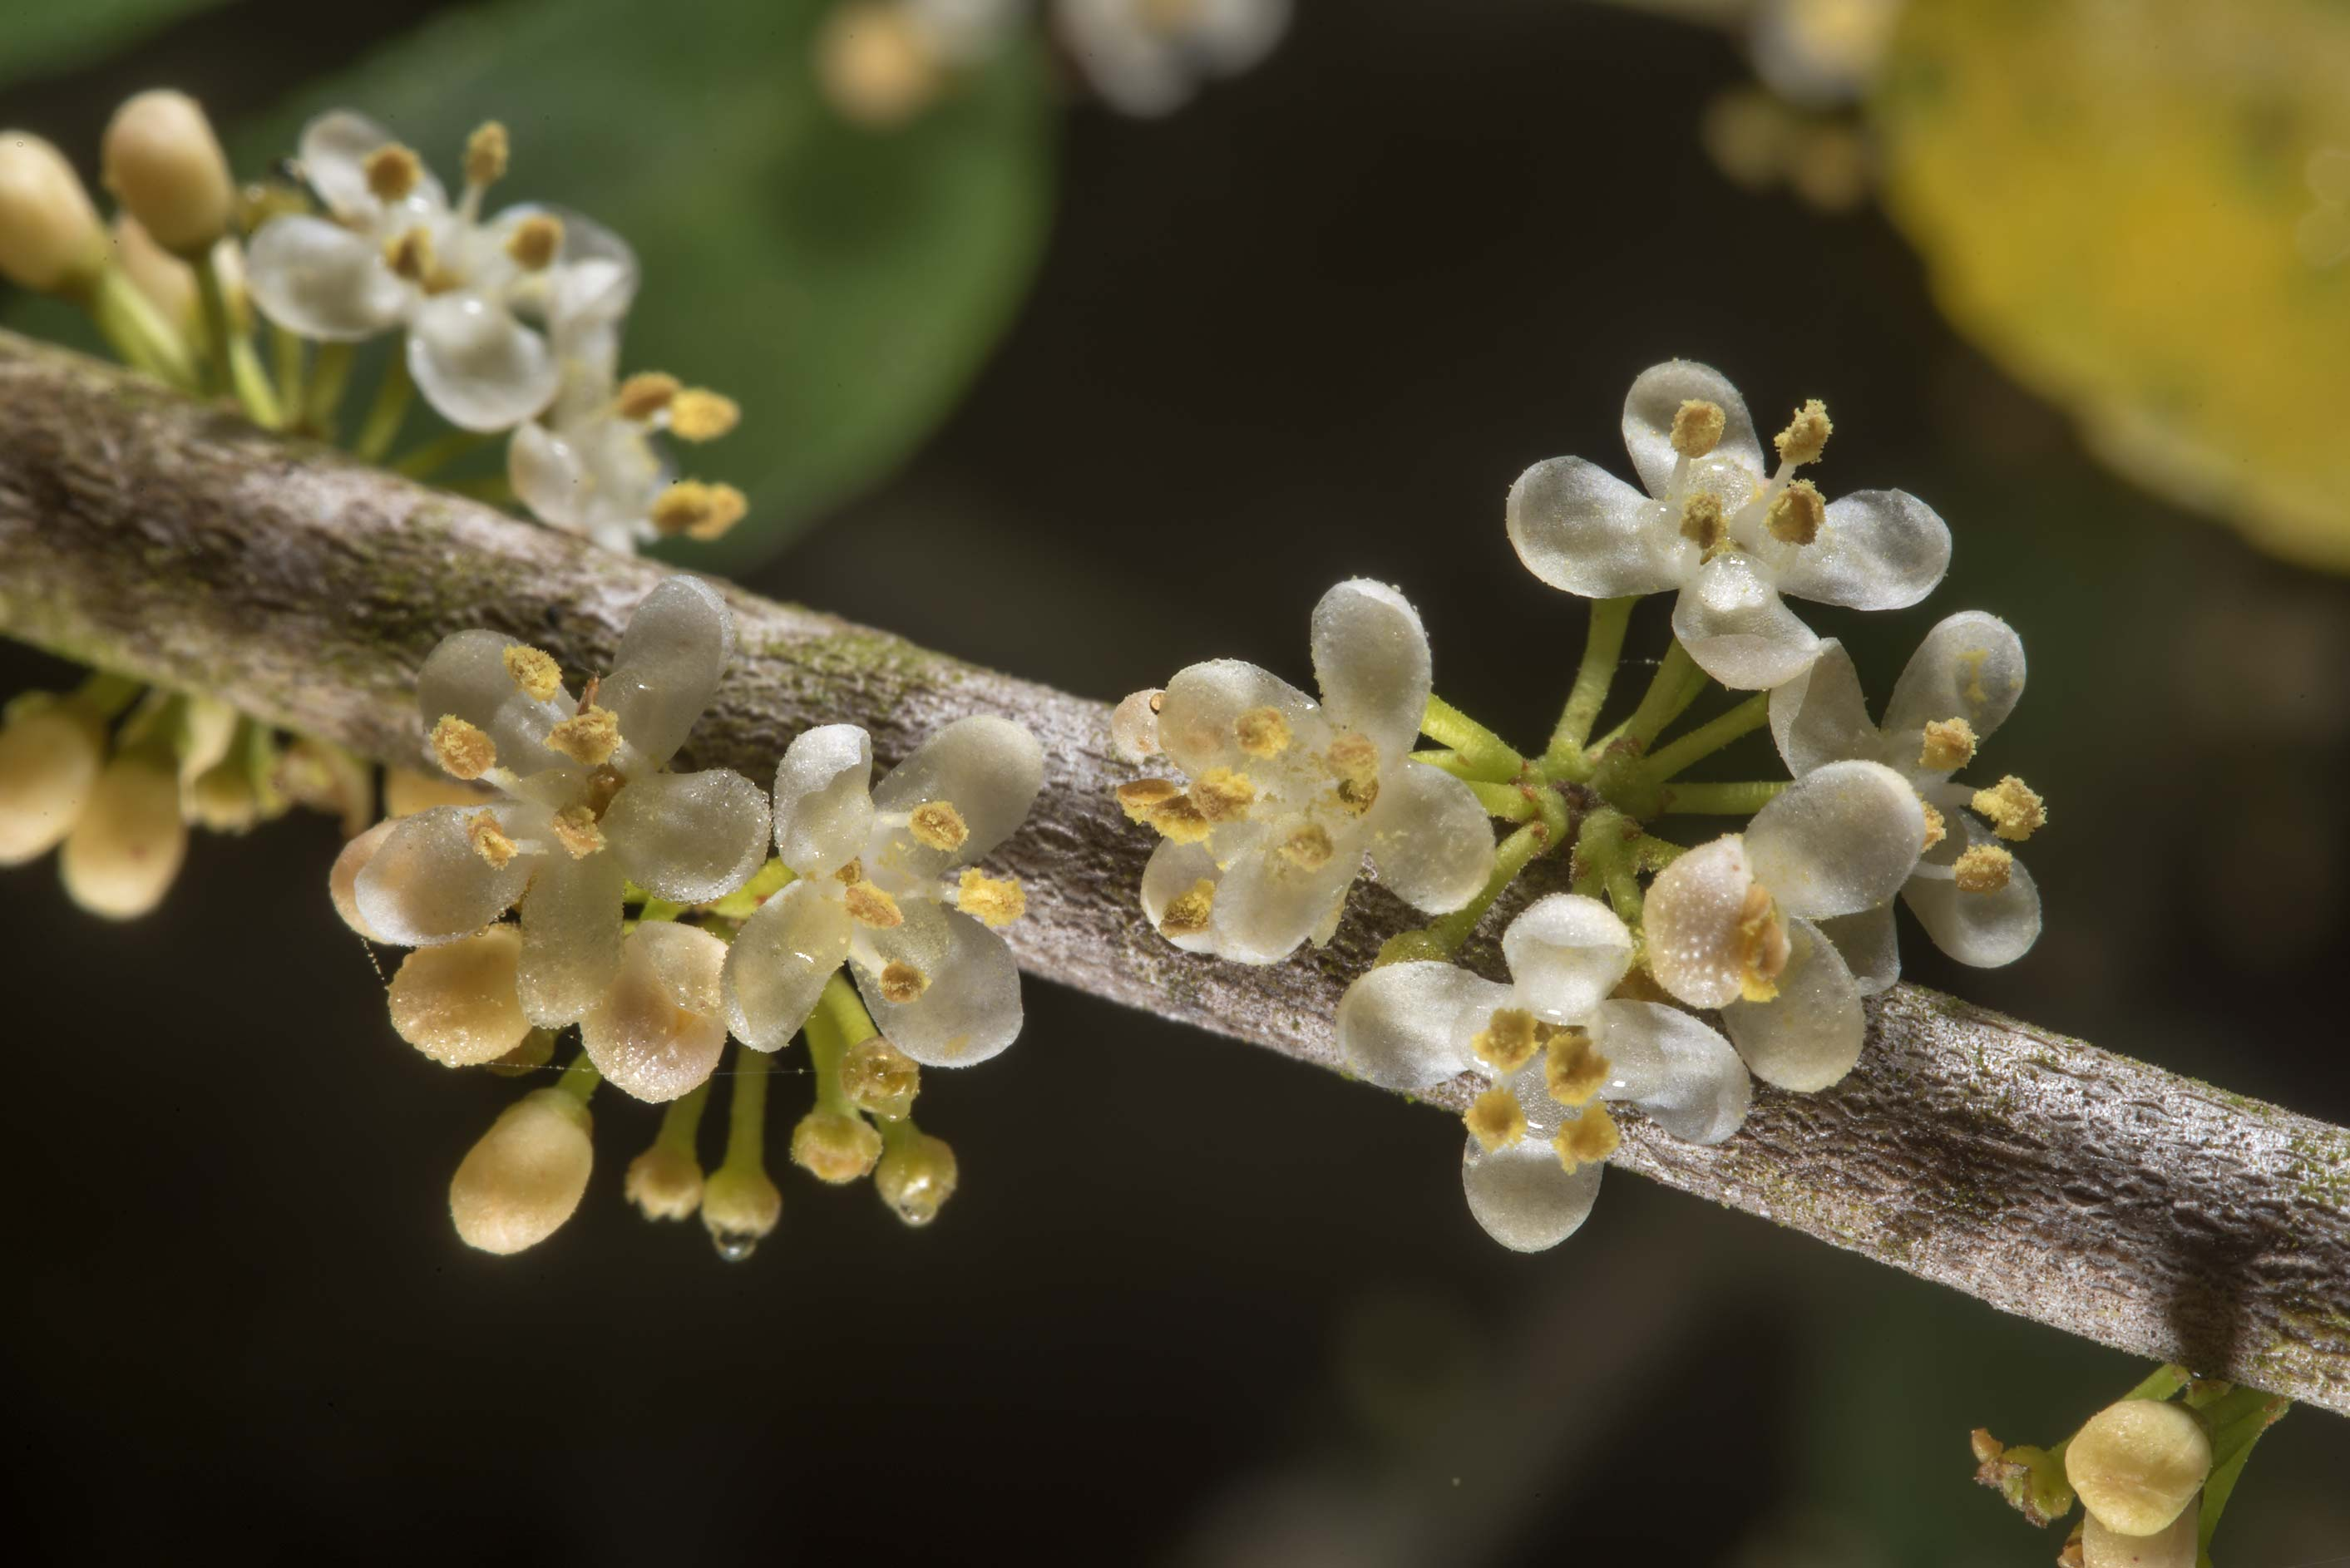 Flowers of yaupon holly in Lick Creek Park. College Station, Texas